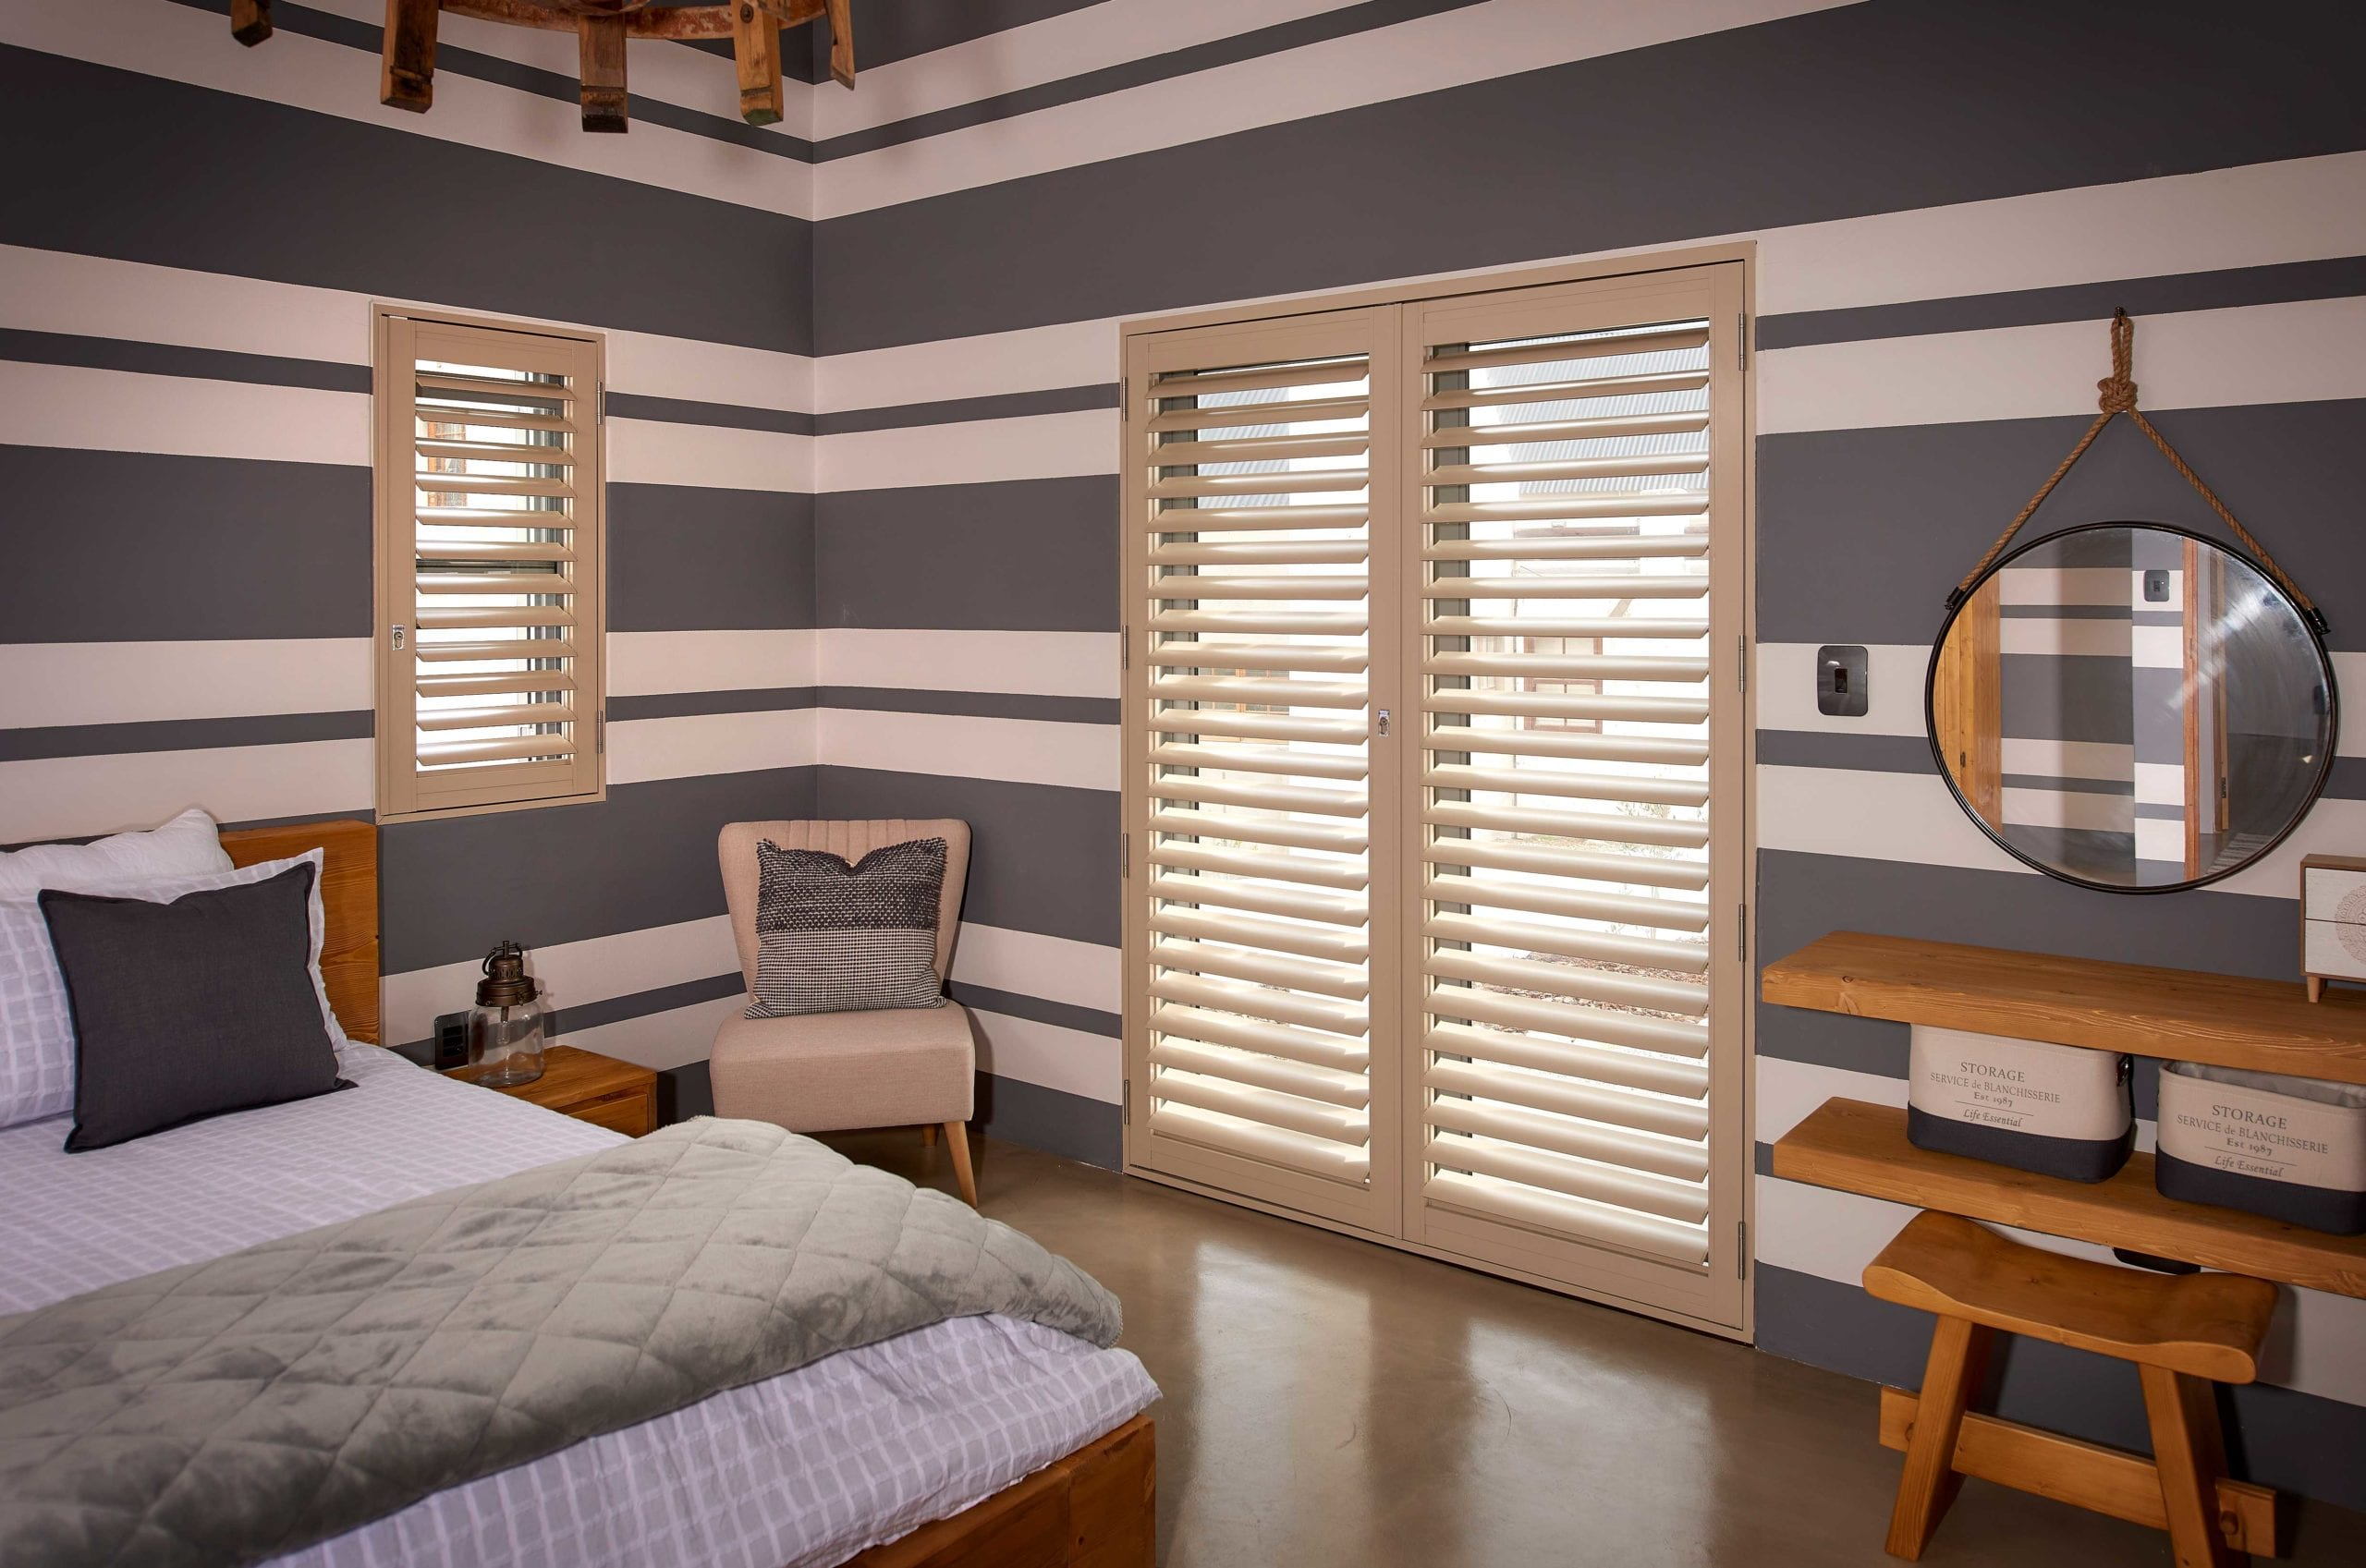 Security Shutters for Bedroom